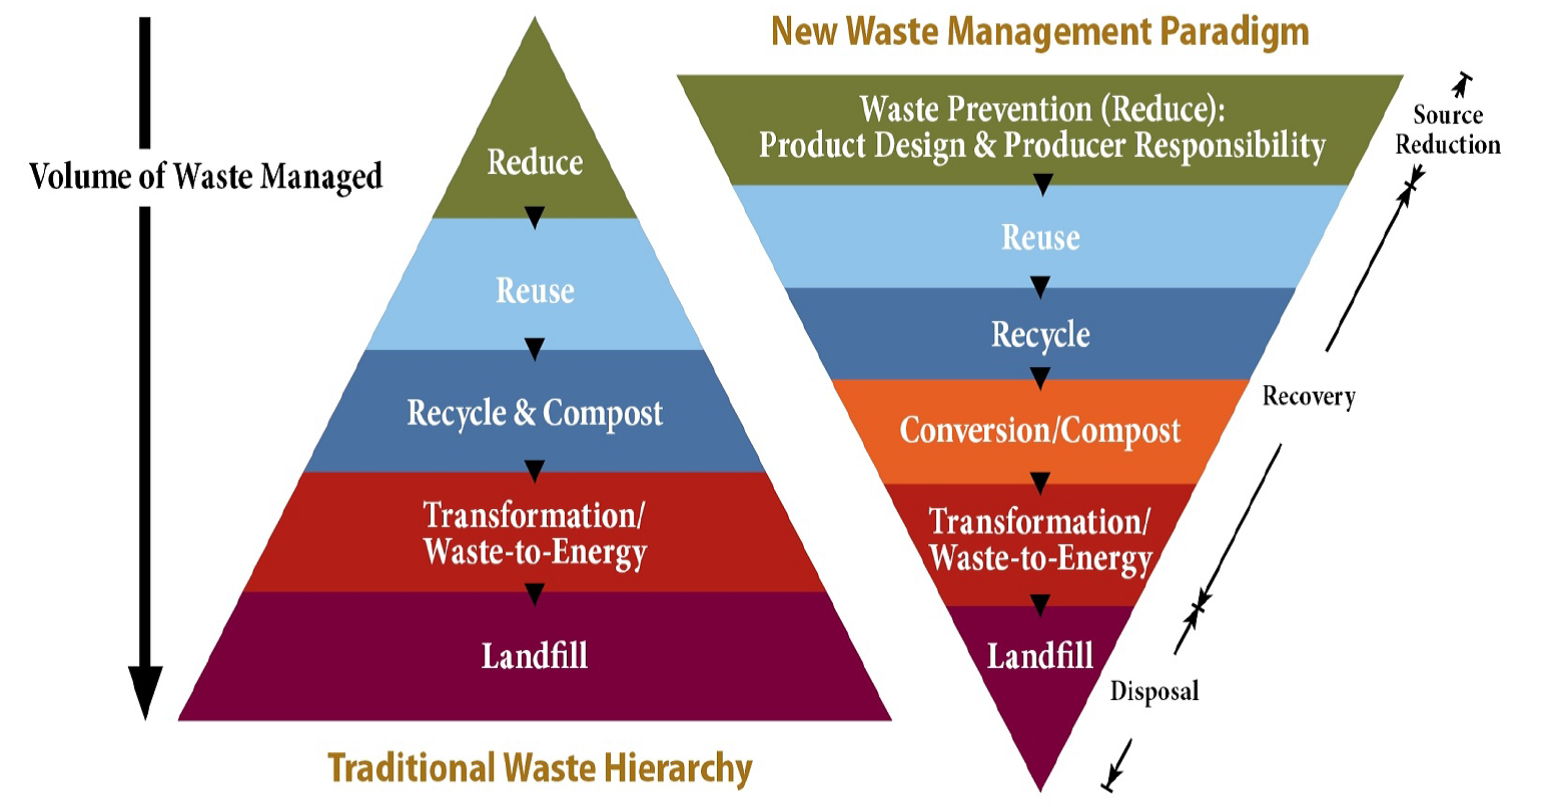 Waste Management Paradigm